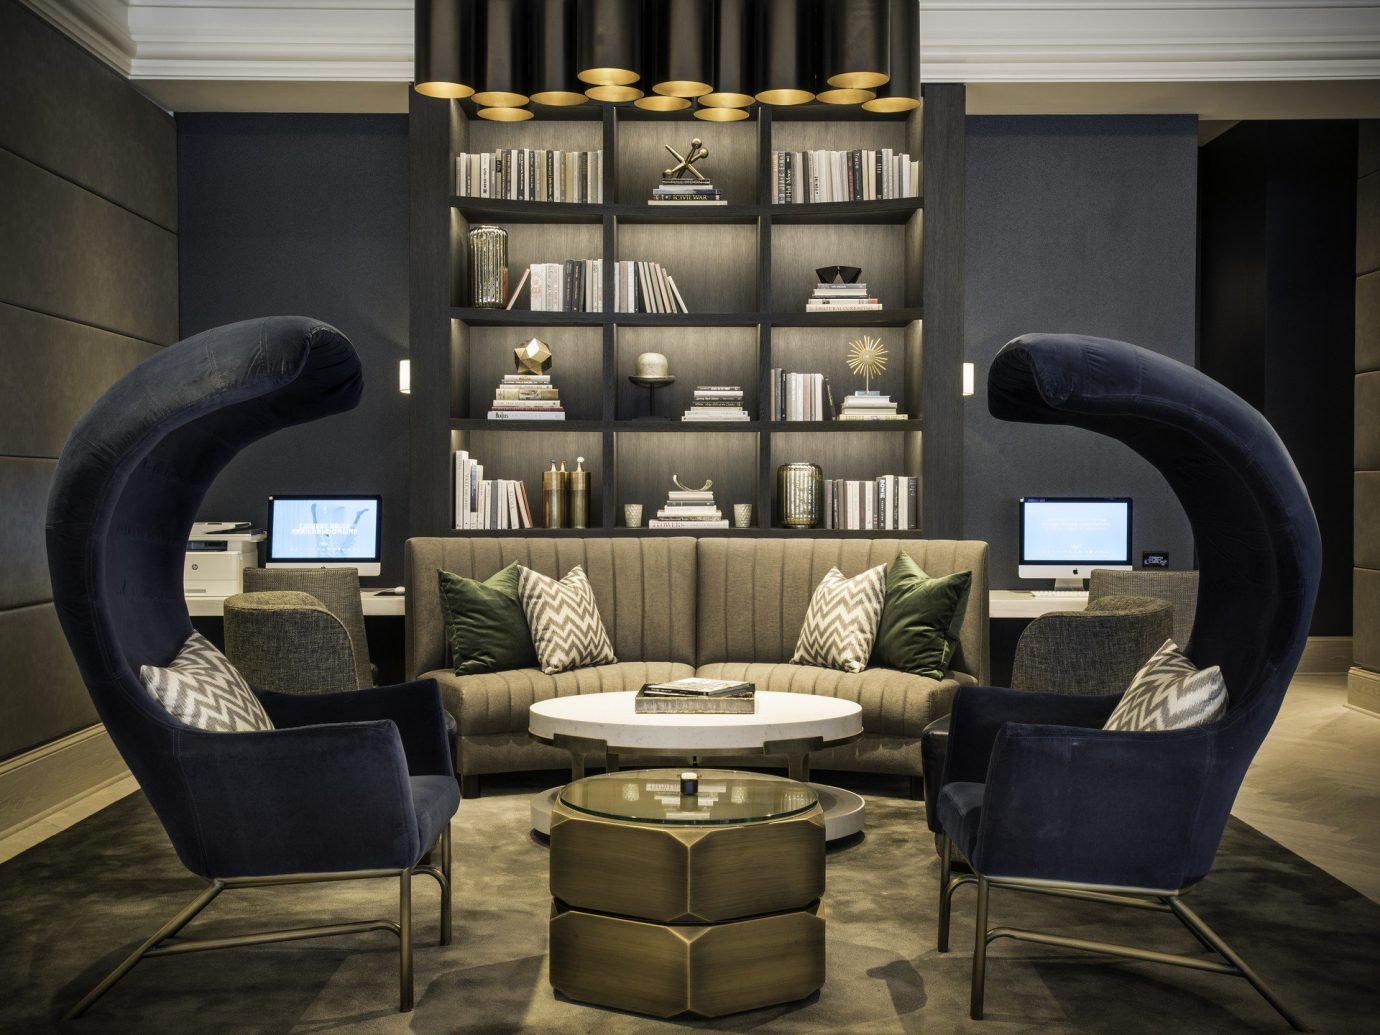 artistic artsy chic cozy Hip Hotels library living area Lounge Luxury neutral tones regal sophisticated trendy floor chair indoor living room furniture room interior design home Design table leather